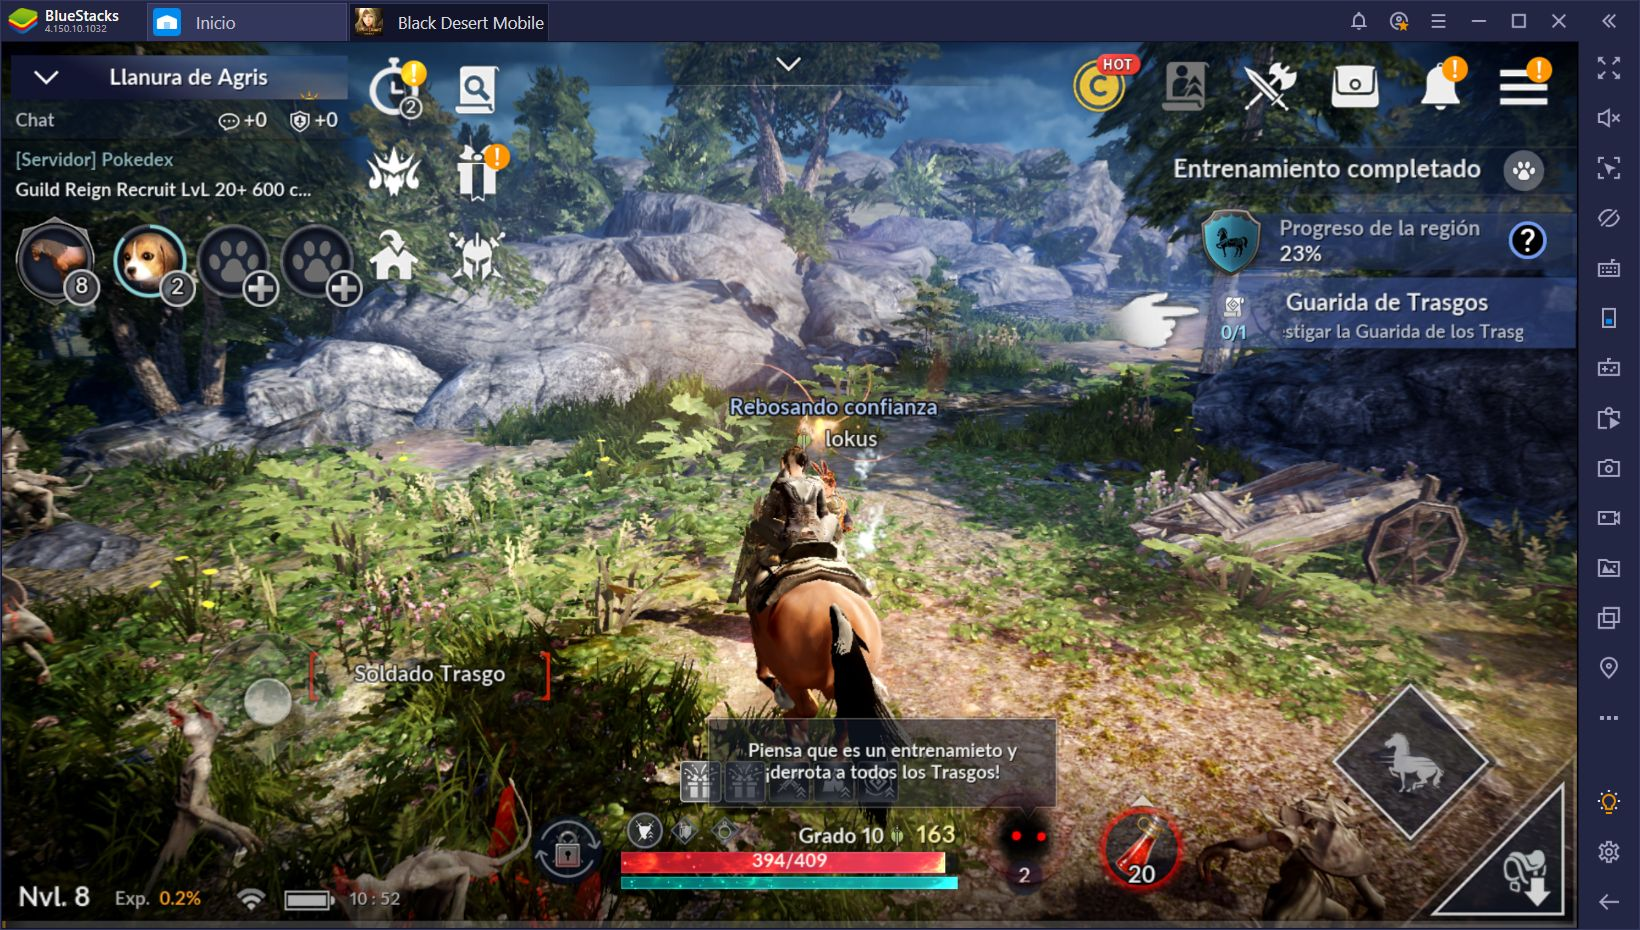 La revisión de BlueStacks 2019 para Black Desert Mobile